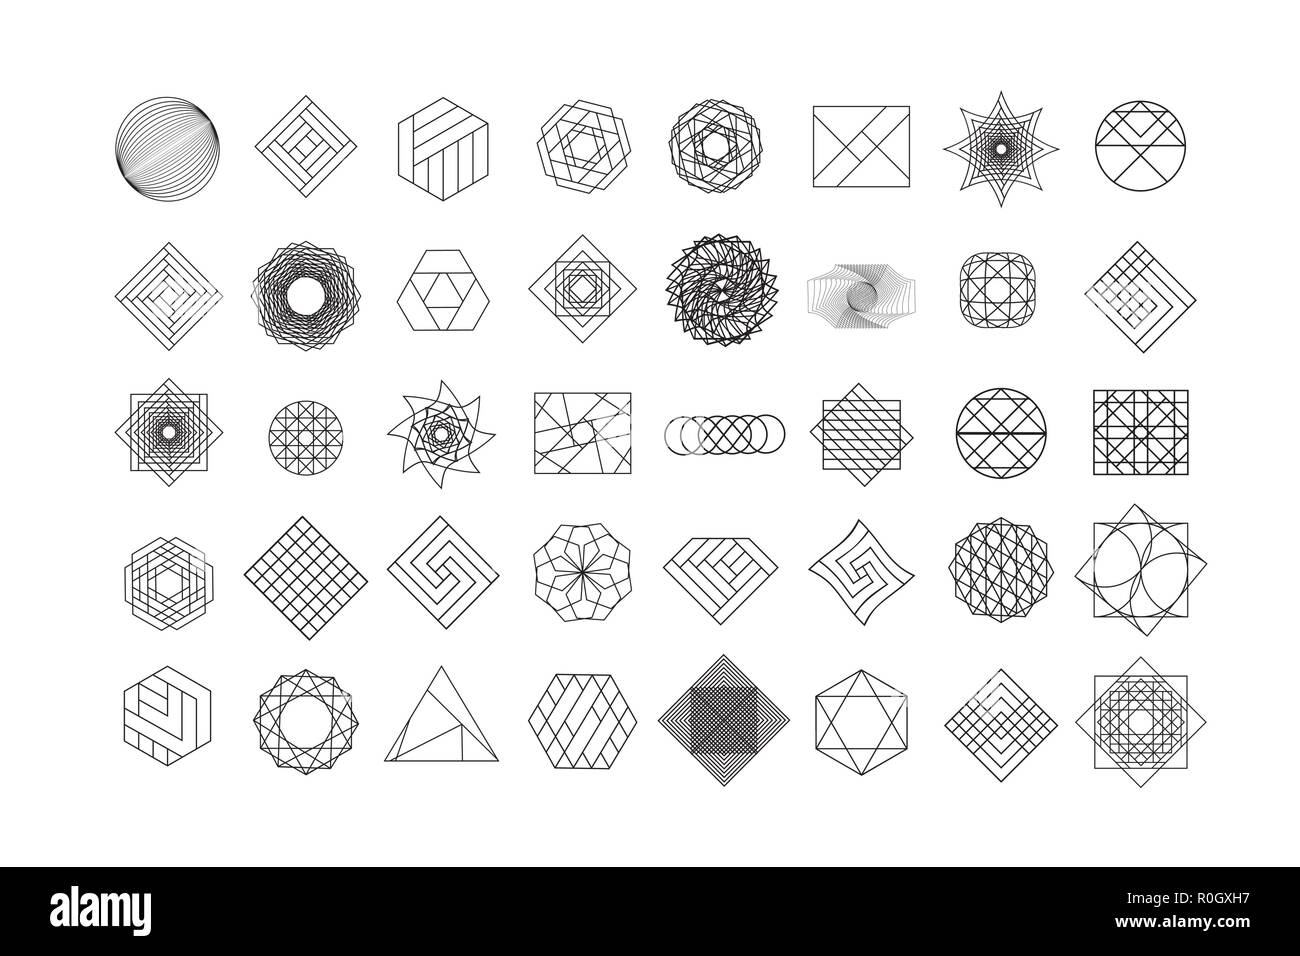 Set of geometric shapes. Trendy hipster background and logotypes. Religion, philosophy, spirituality, occultism symbols collection - Stock Vector